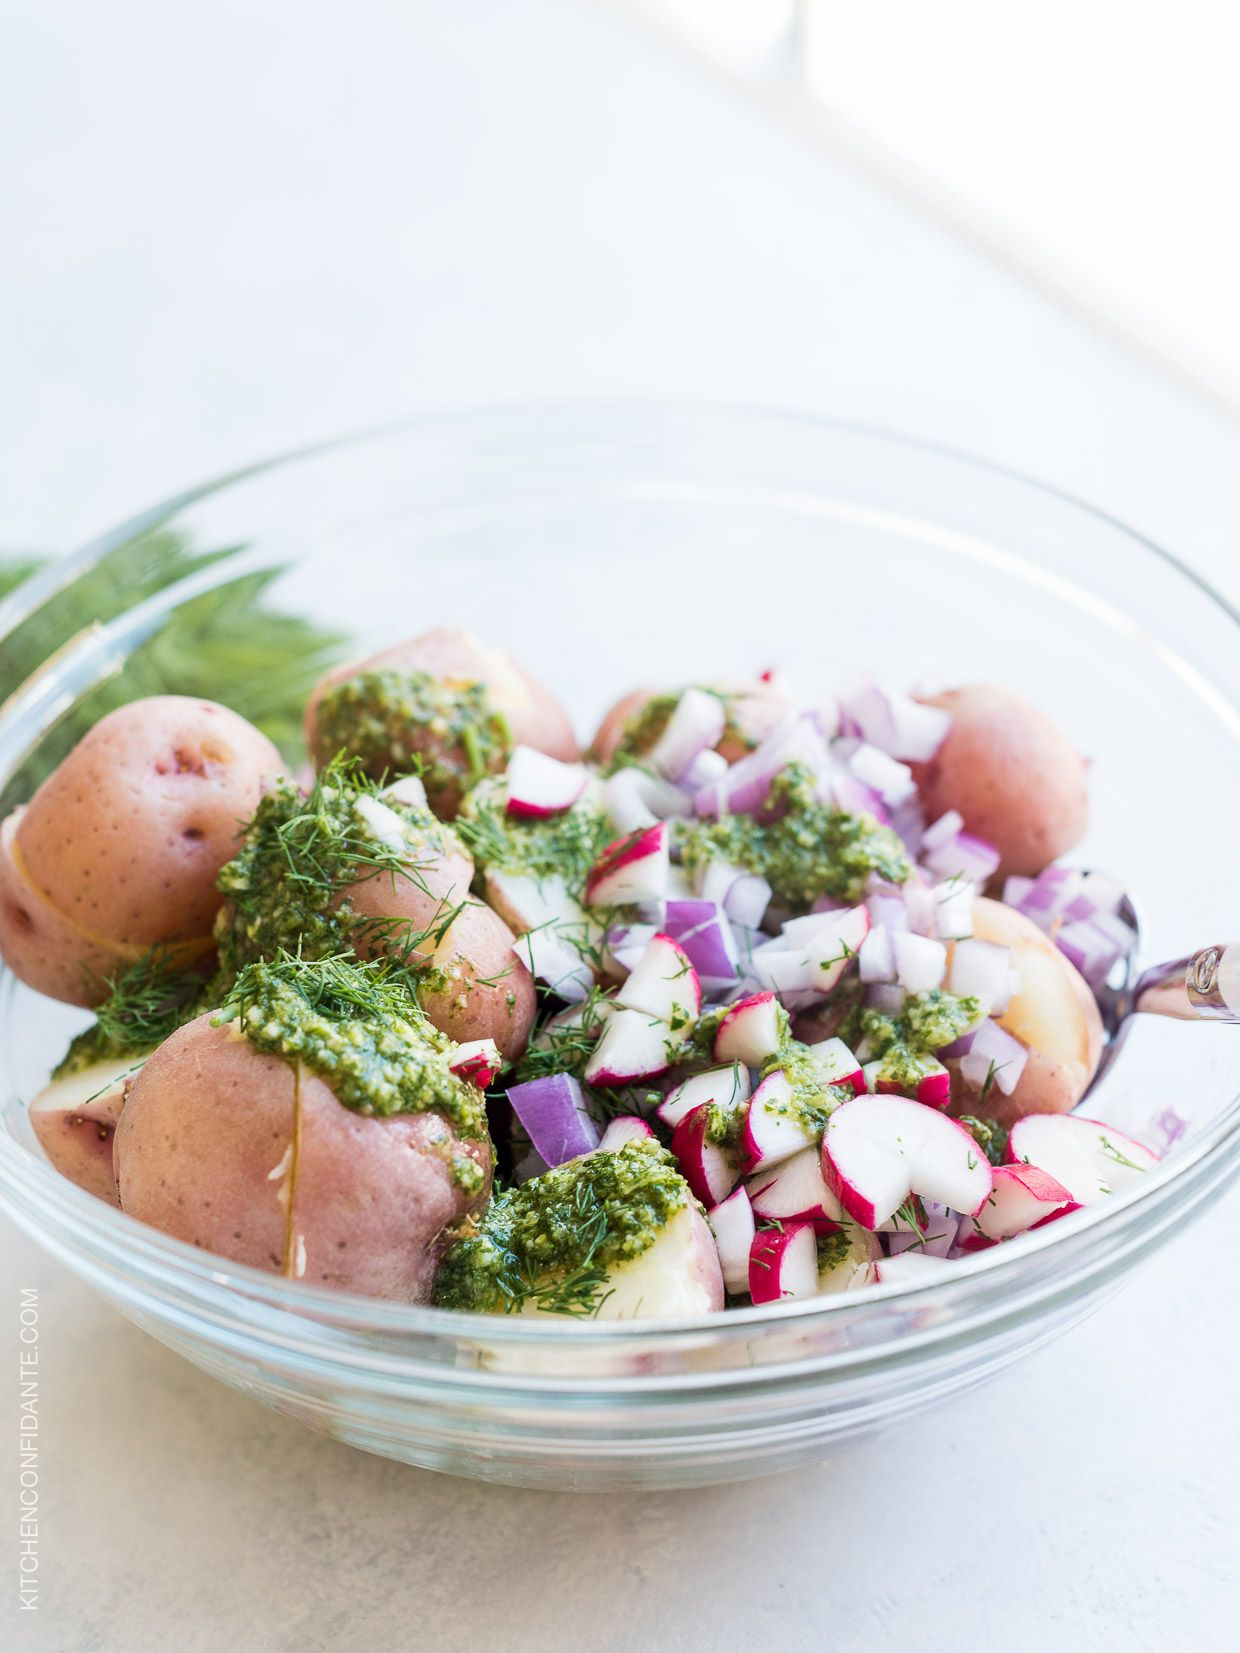 Chimichurri Potato Salad is the easiest feast to come off the grill! A simple chimichurri made with good olive oil and red wine vinegar adds zing to an herbed potato salad. Try it for your next barbecue!